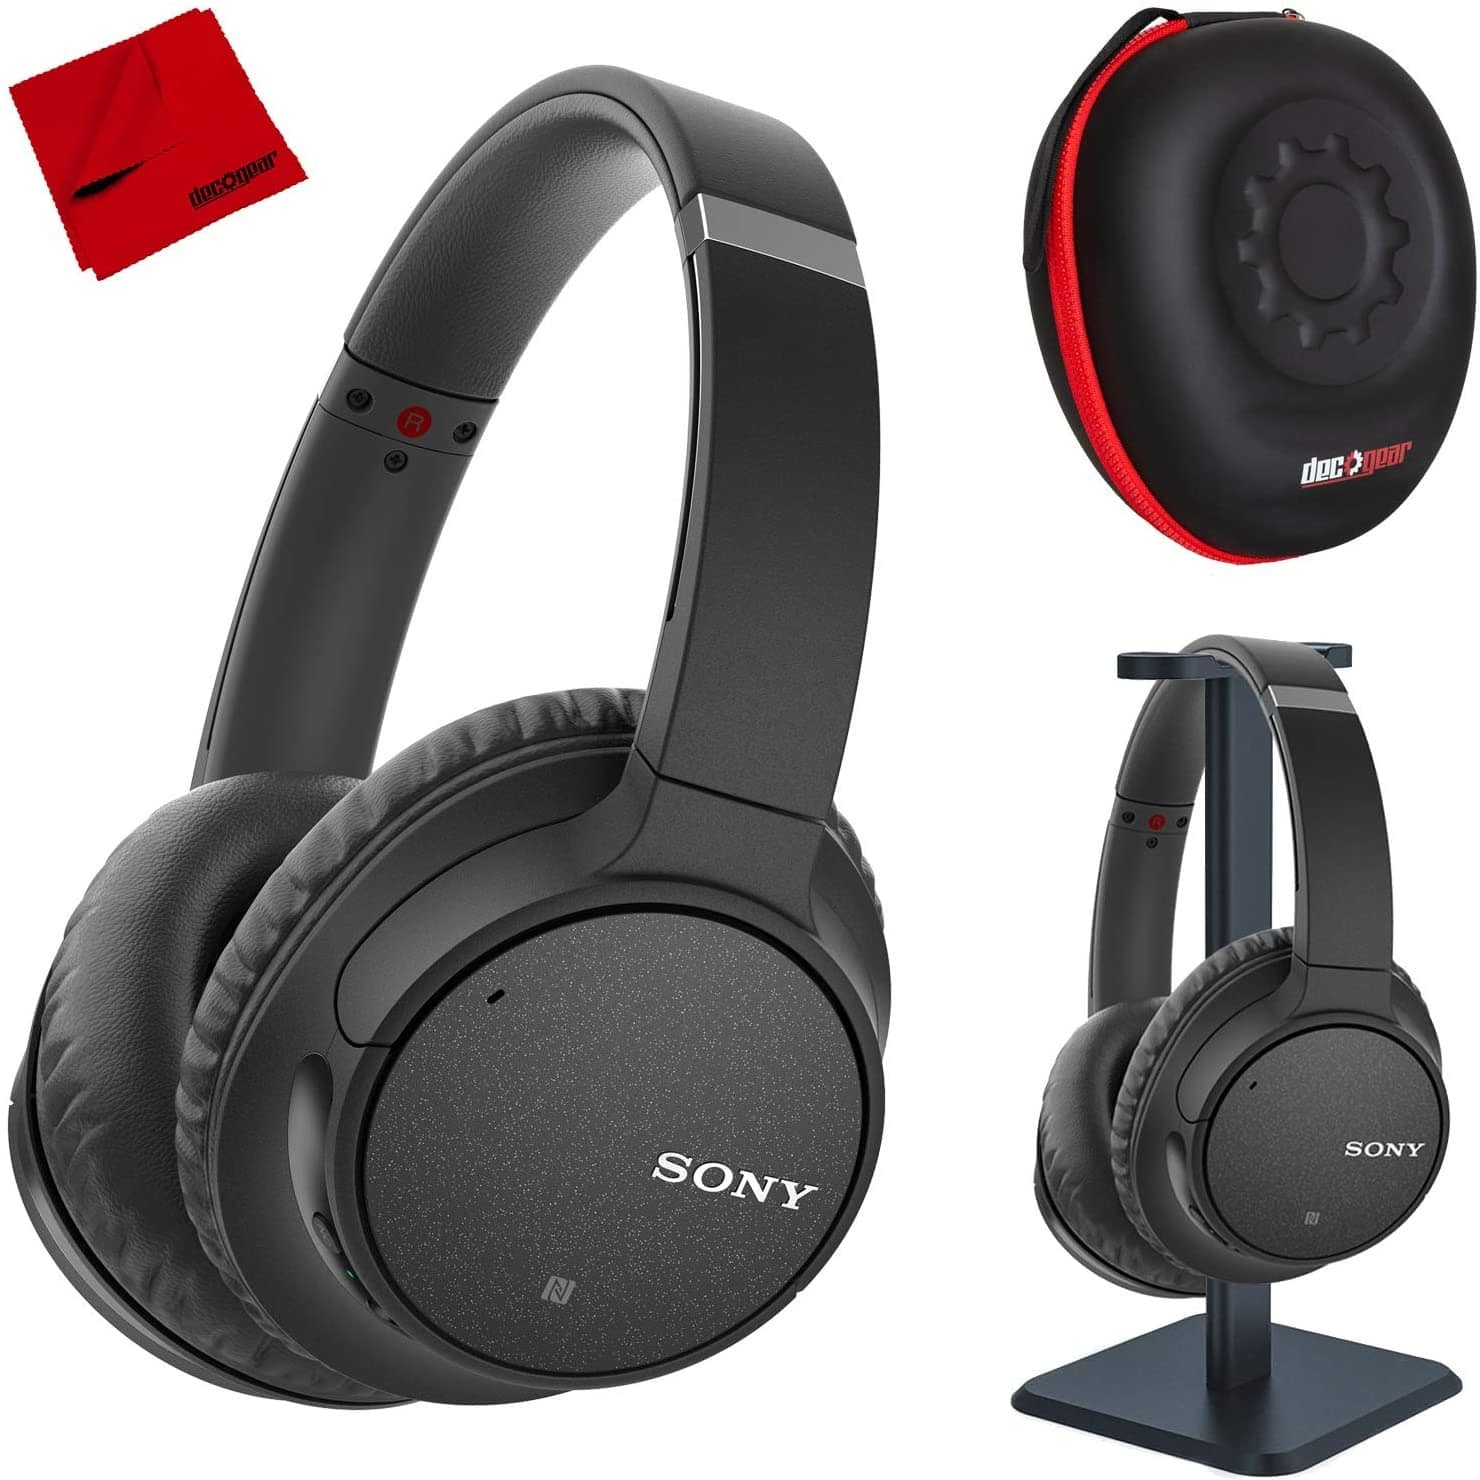 Sony WH-CH700N Wireless Headphones: A Complete Review